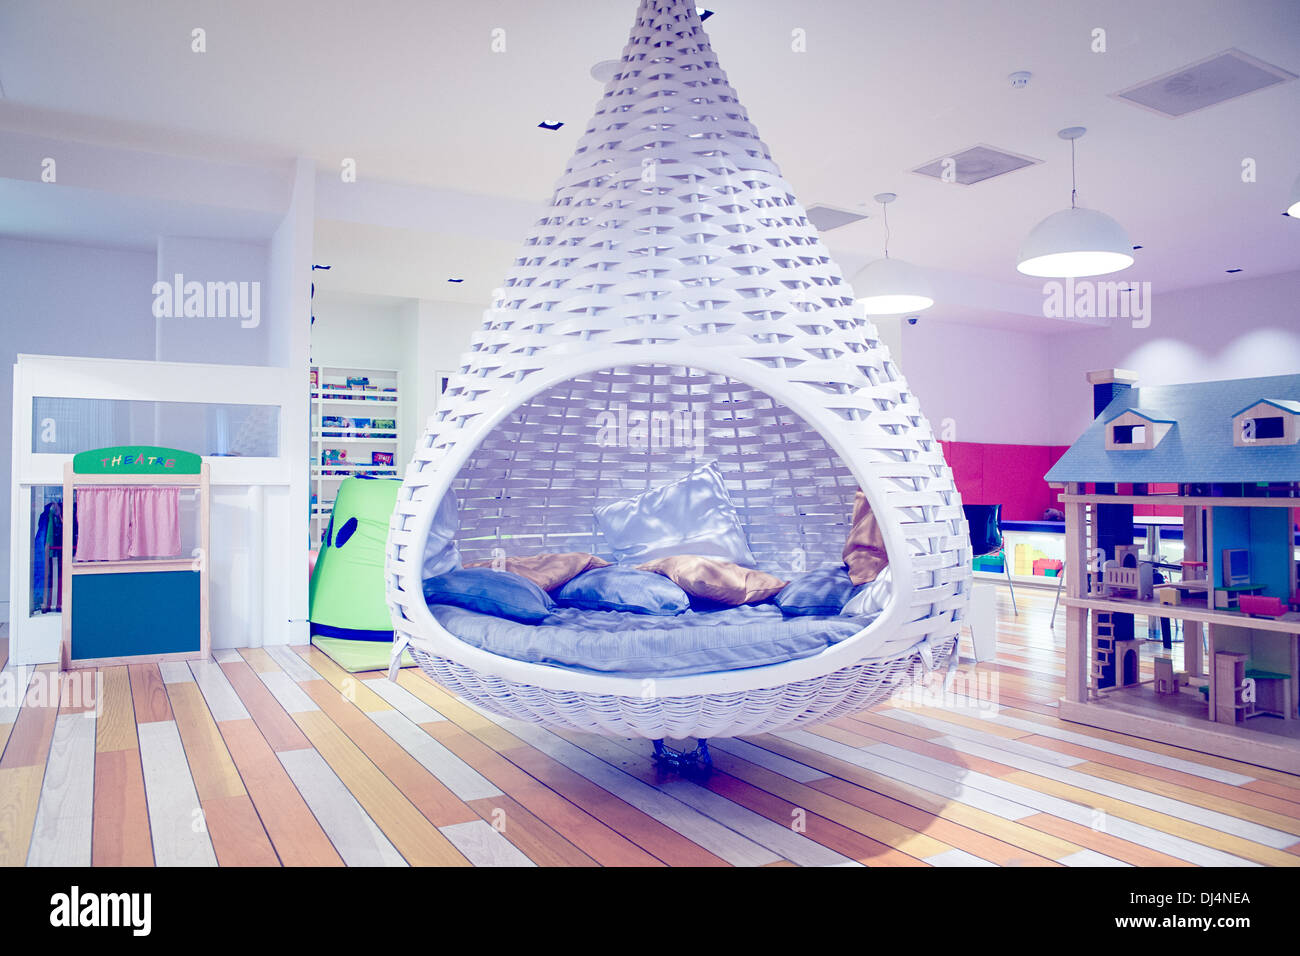 A relaxation pod in a nursery - Stock Image